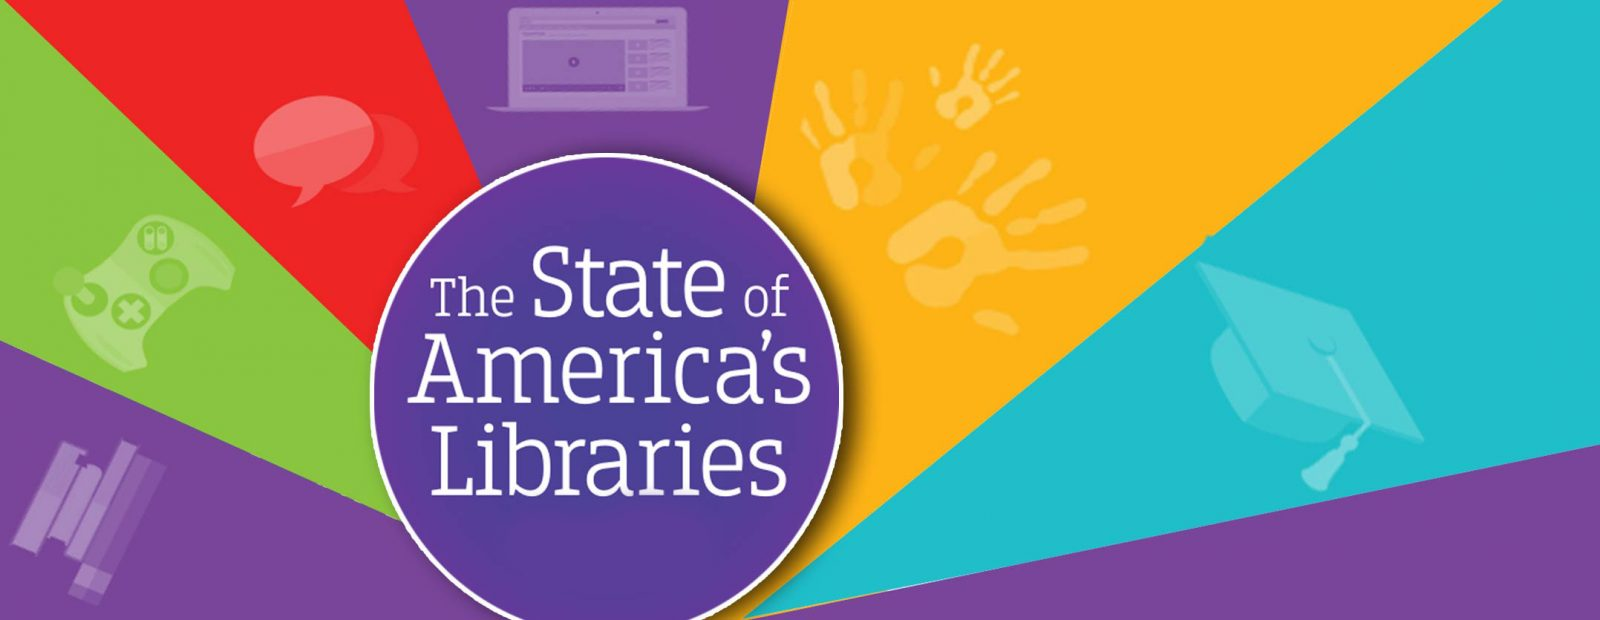 New Report Affirms Invaluable Role of Our Nation's Libraries